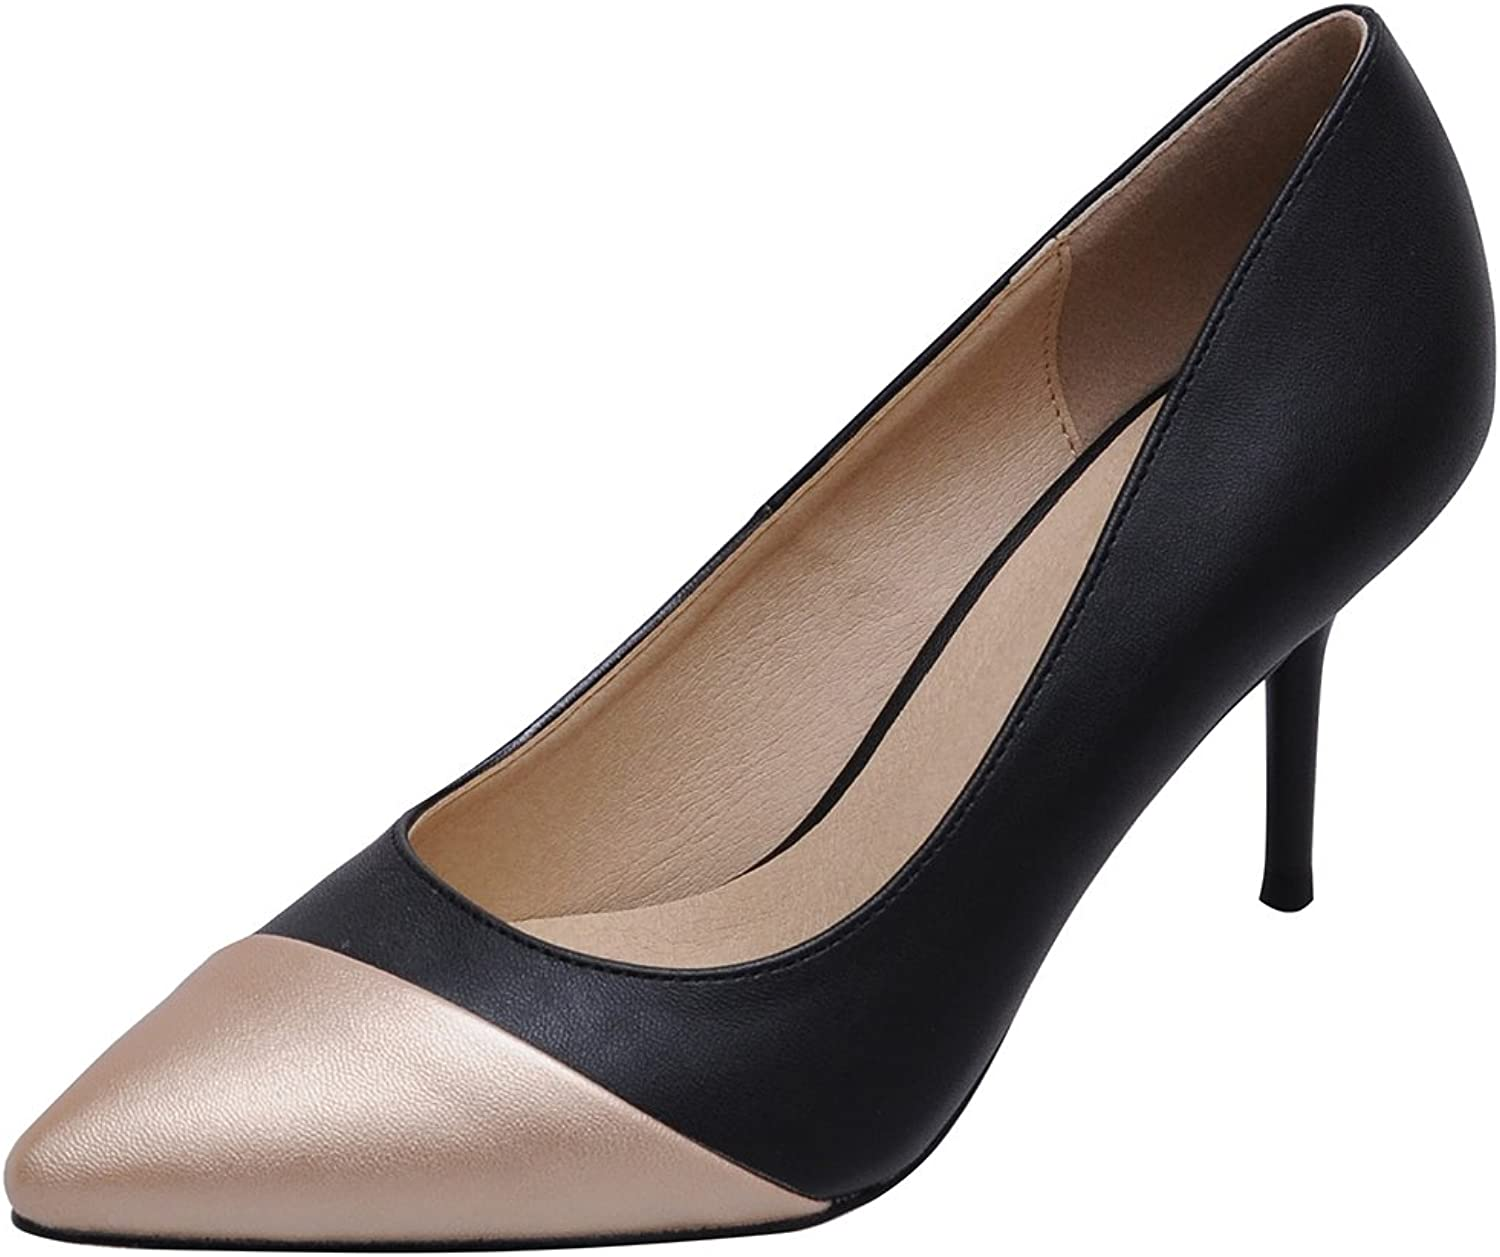 Salabobo 1056 Womens Character OL Business Comfort Work Wedding Bride Bridesmaid Party Job Pointed Toe Stiletto Cone Heeled PU Pumps